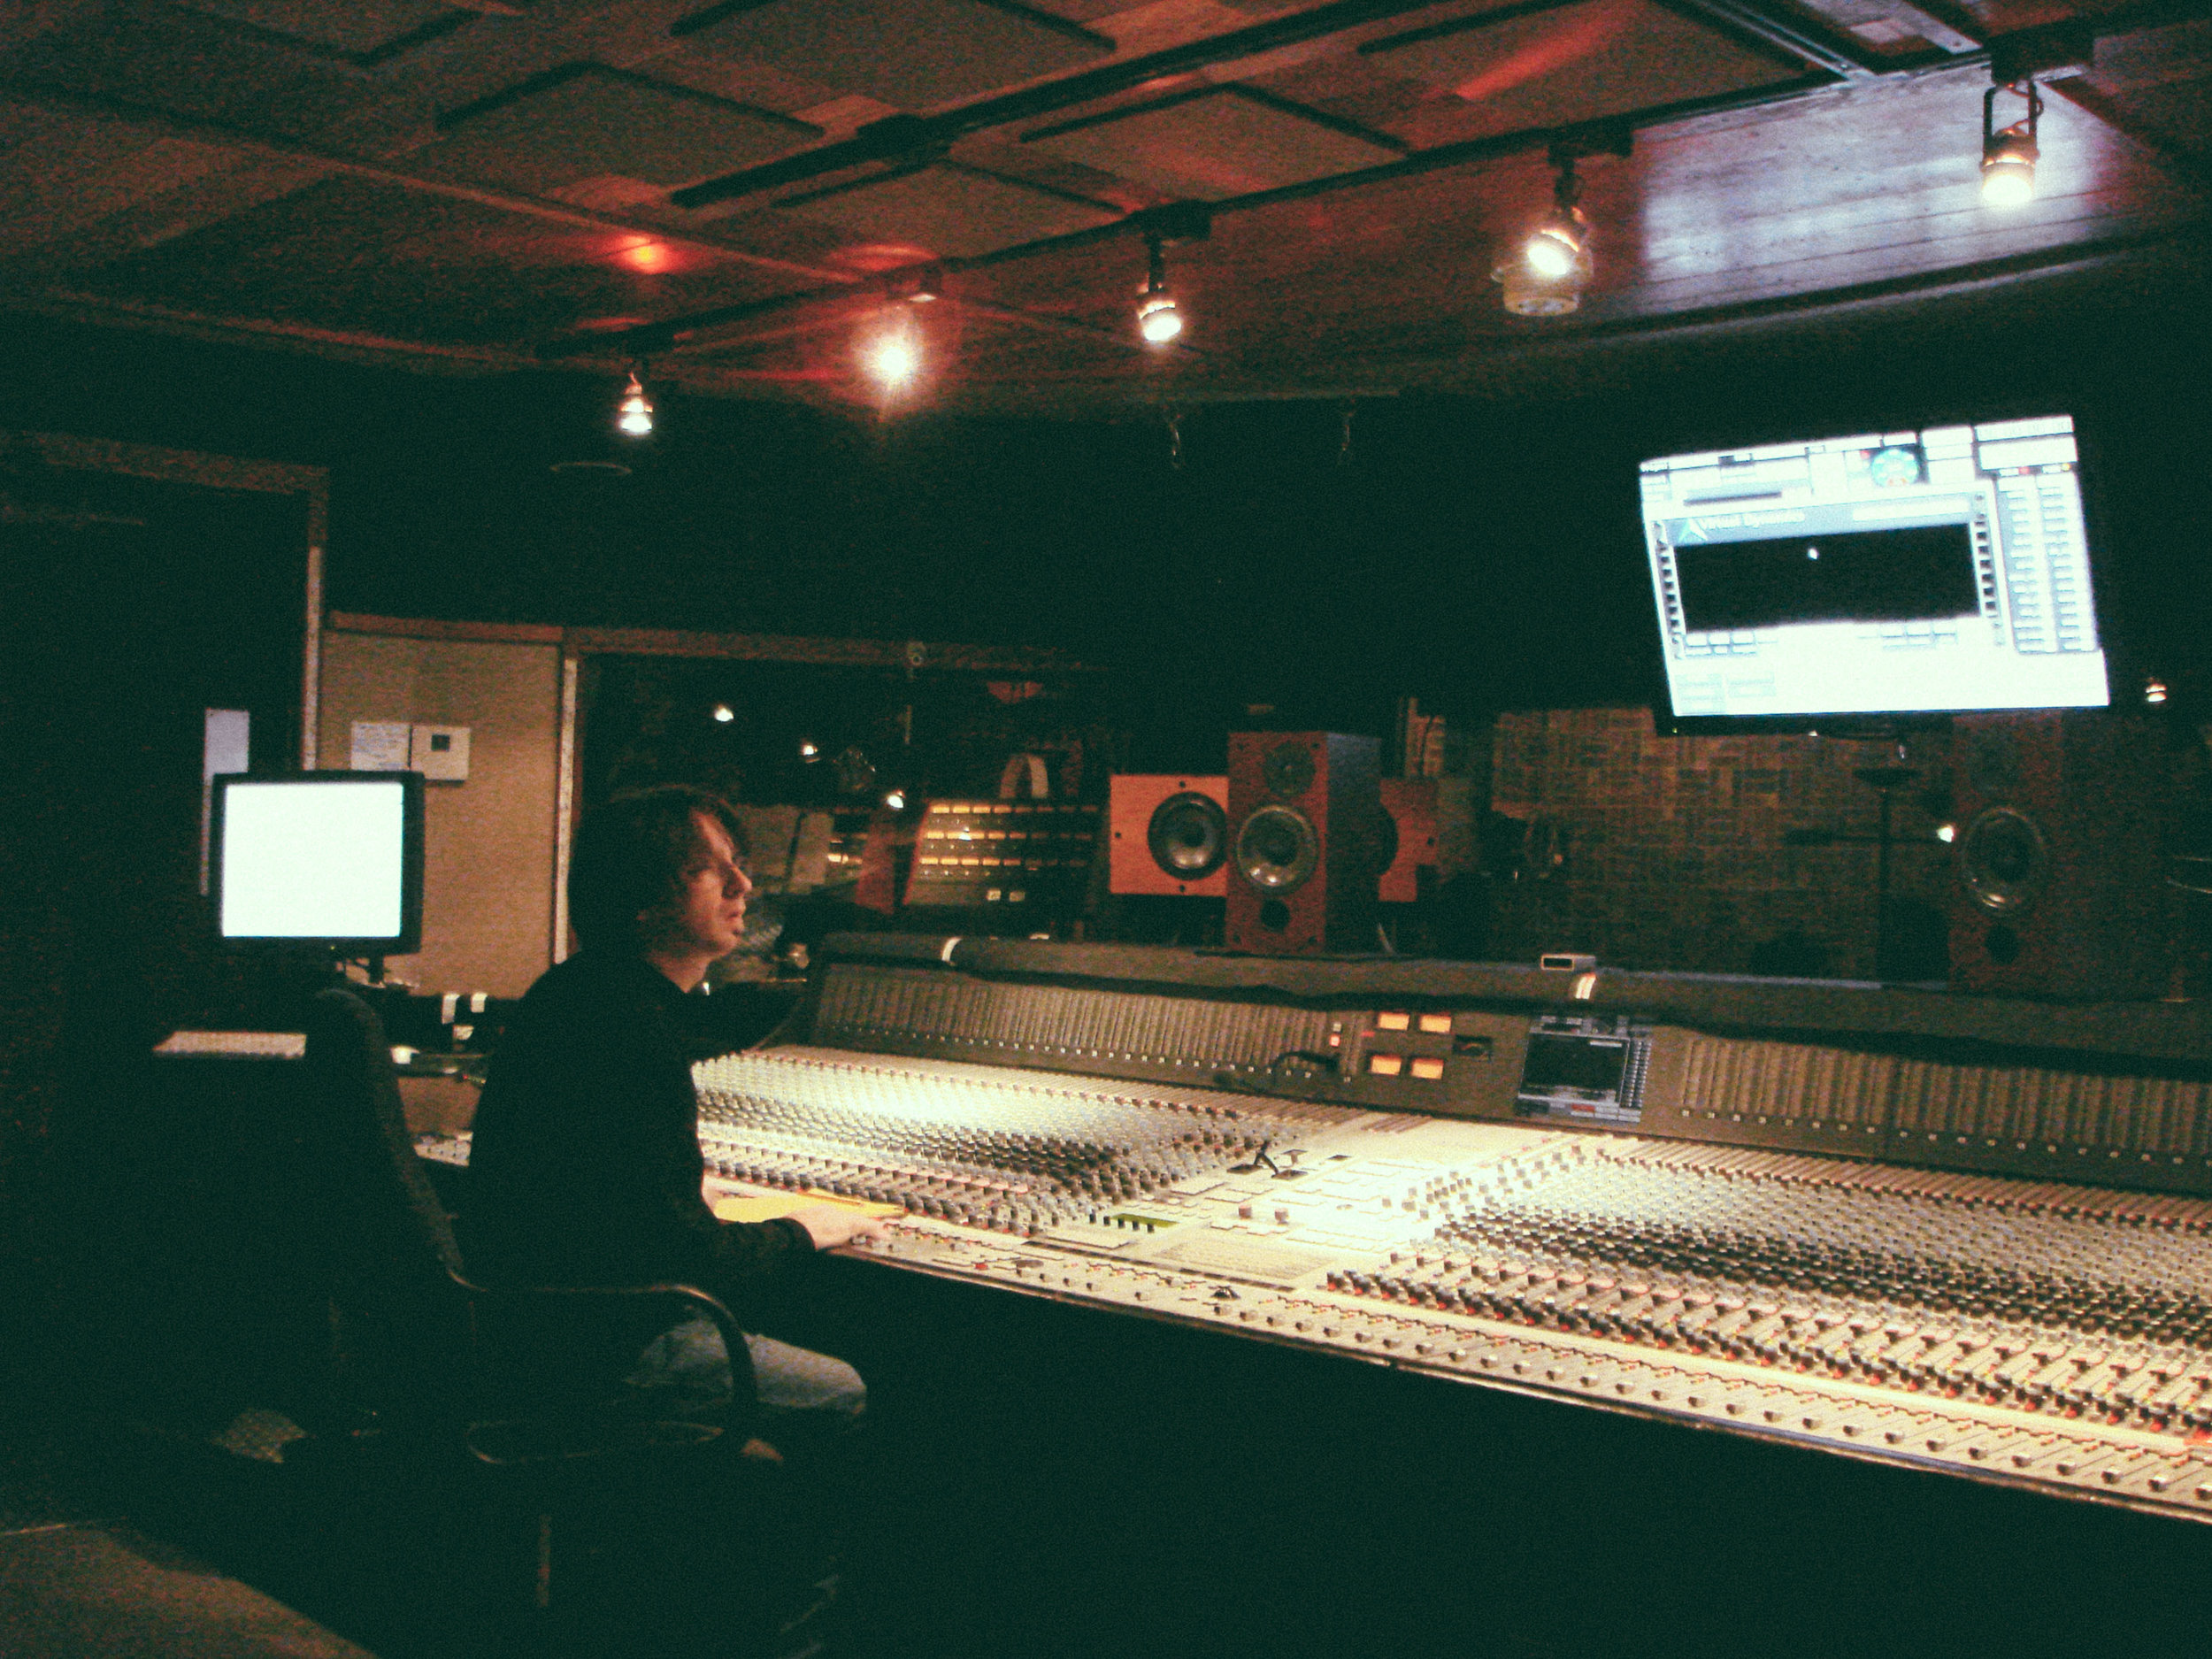 Working at The Hive Recording Studios on the AMEK 9098 owned by 311, Hollywood, CA